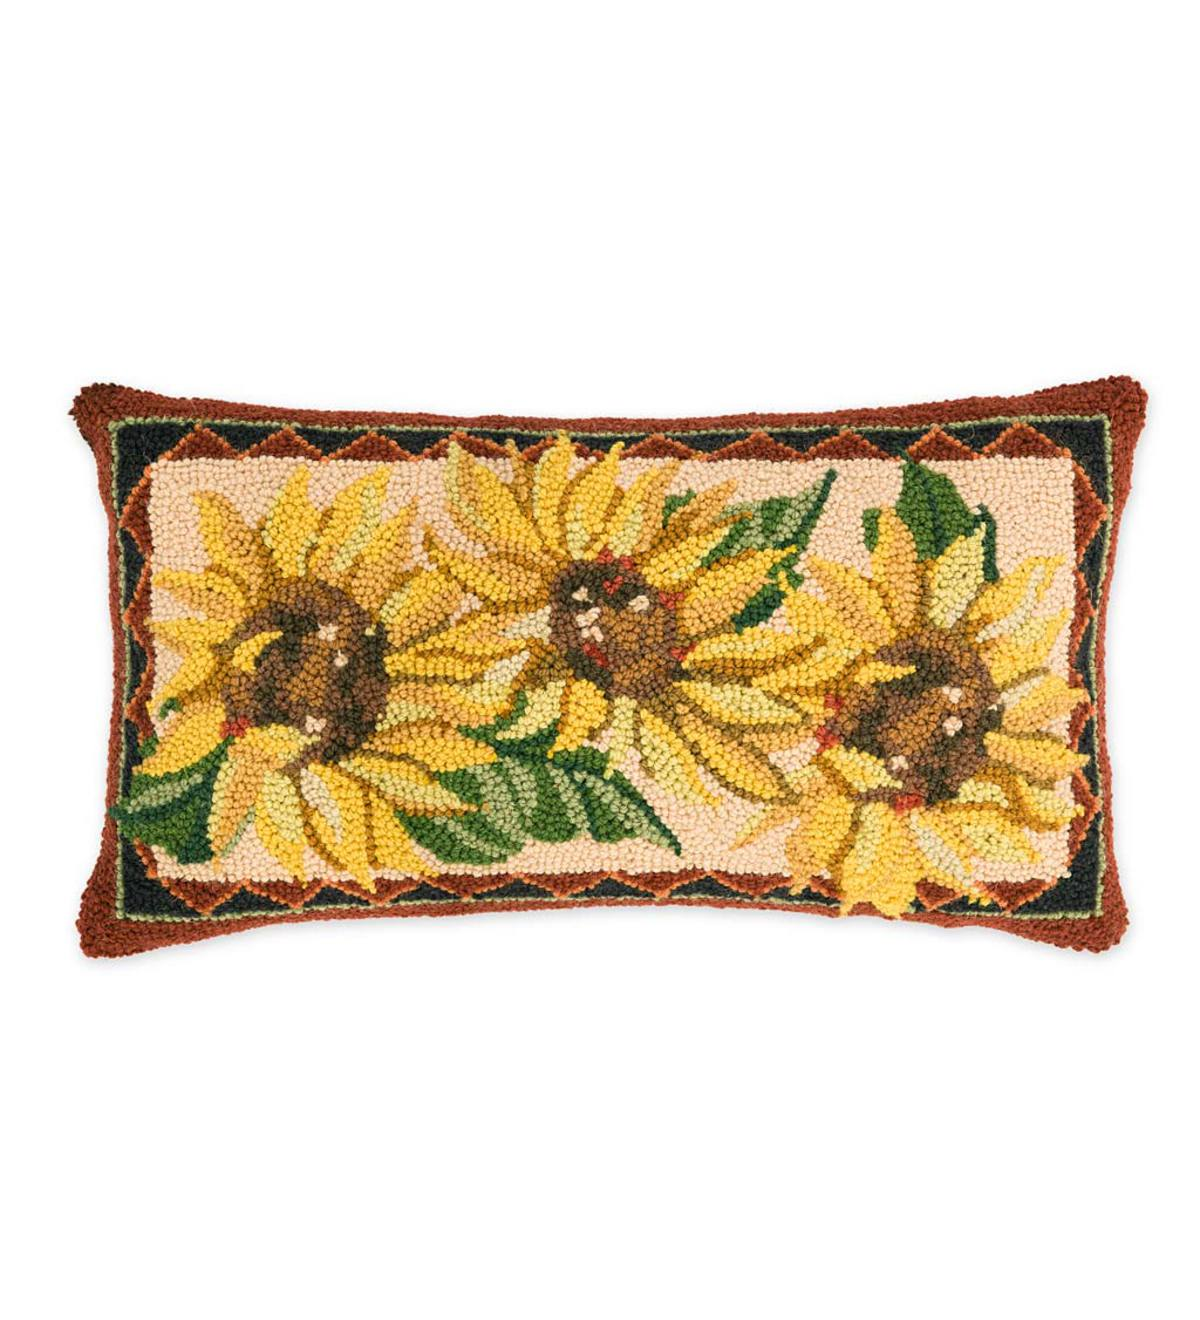 Hooked Wool Sunflower Lumbar Throw Pillow Plowhearth